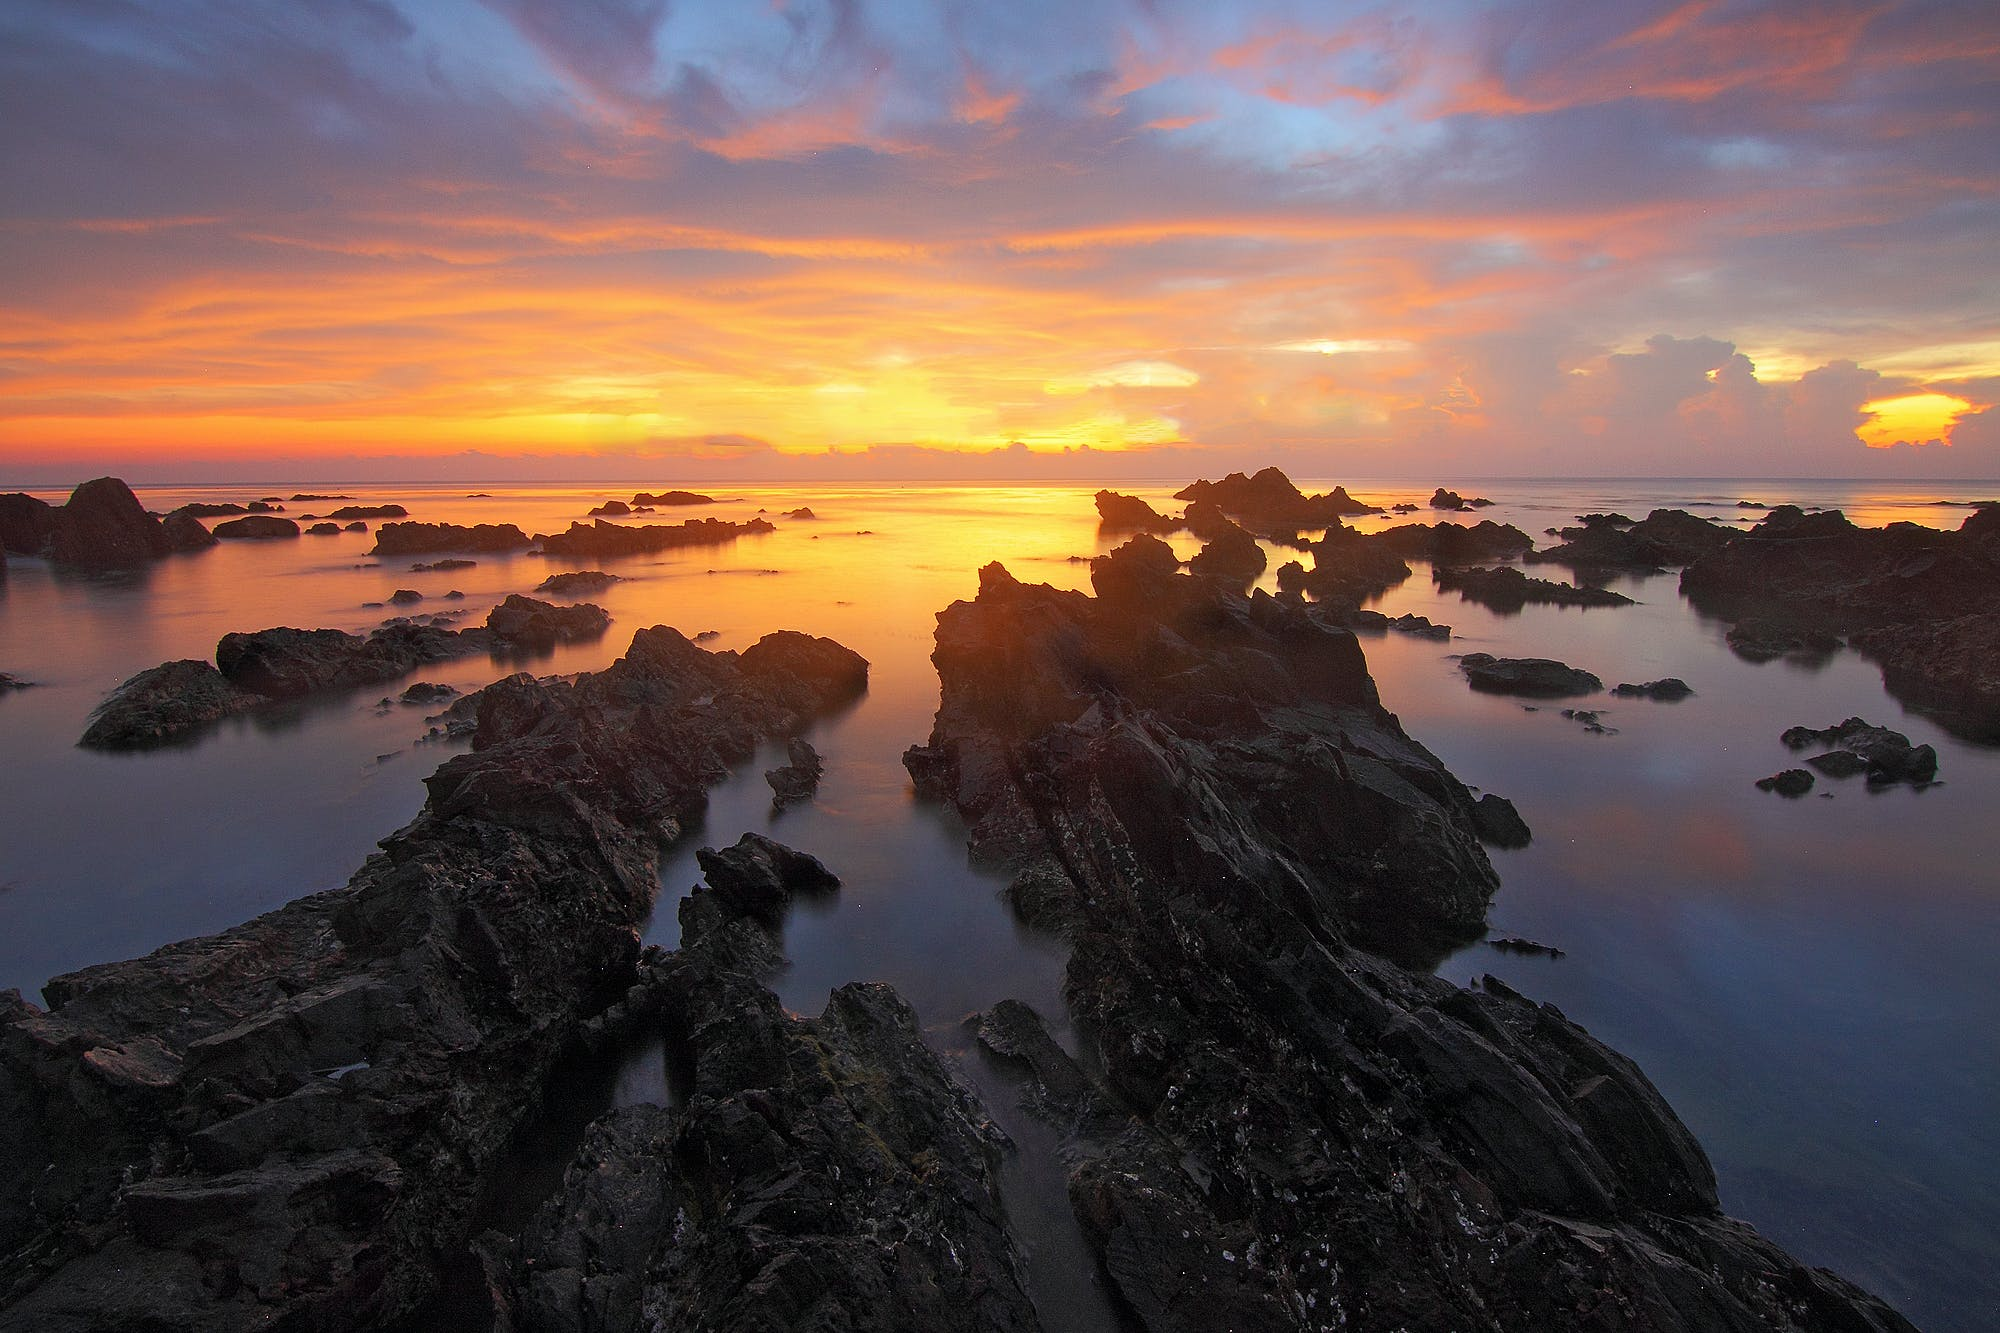 Rocks Near the Body of Water Landscape Photography